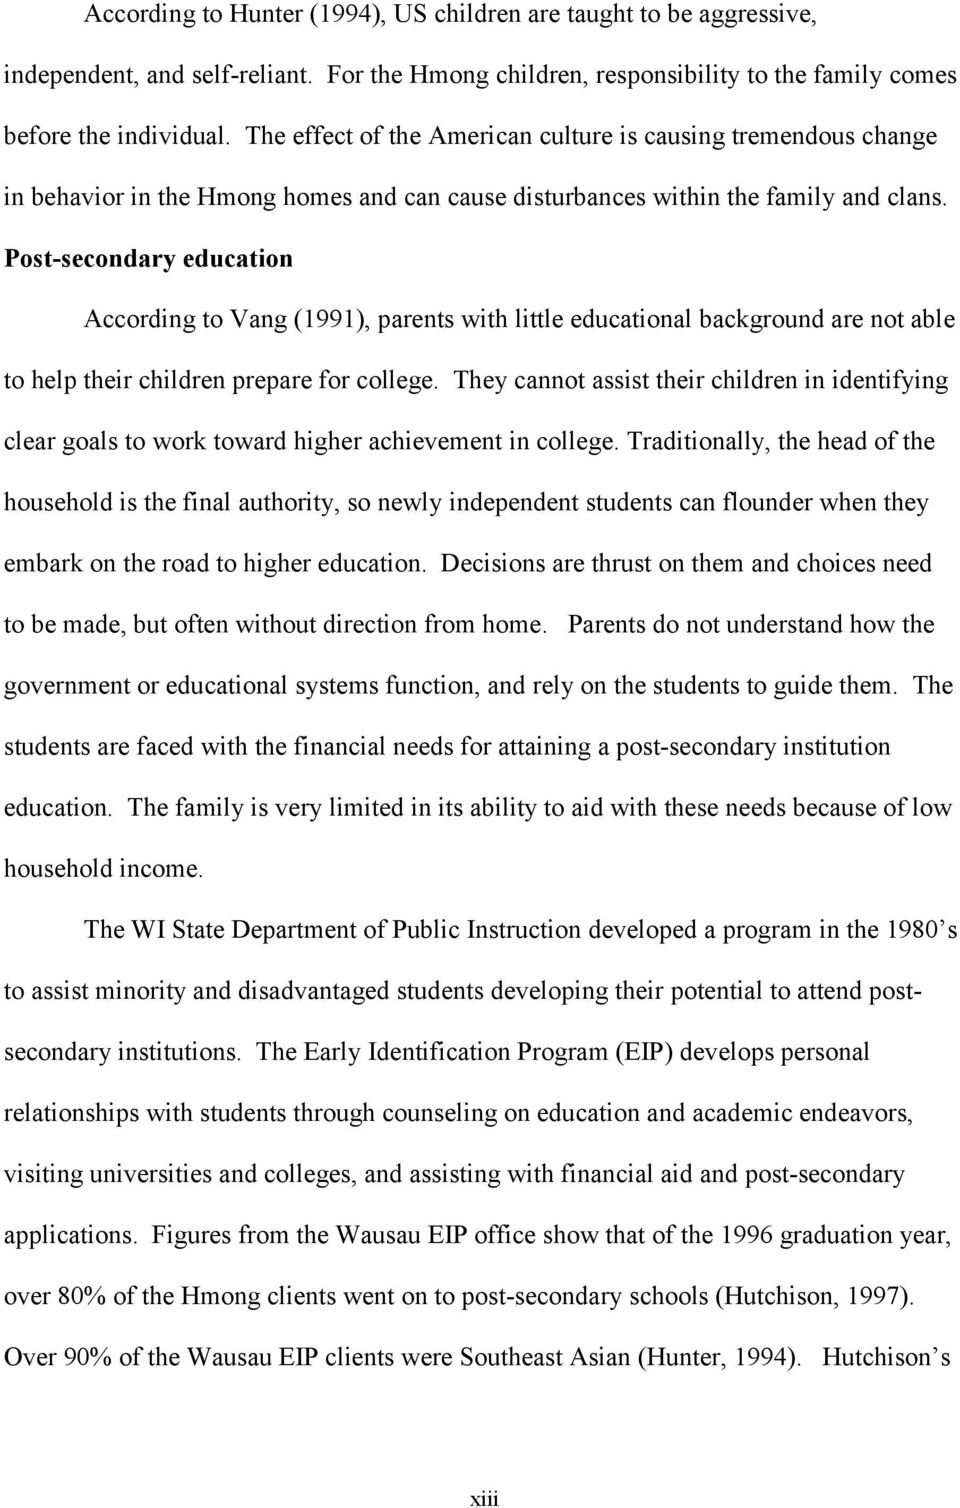 Post-secondary education According to Vang (1991), parents with little educational background are not able to help their children prepare for college.